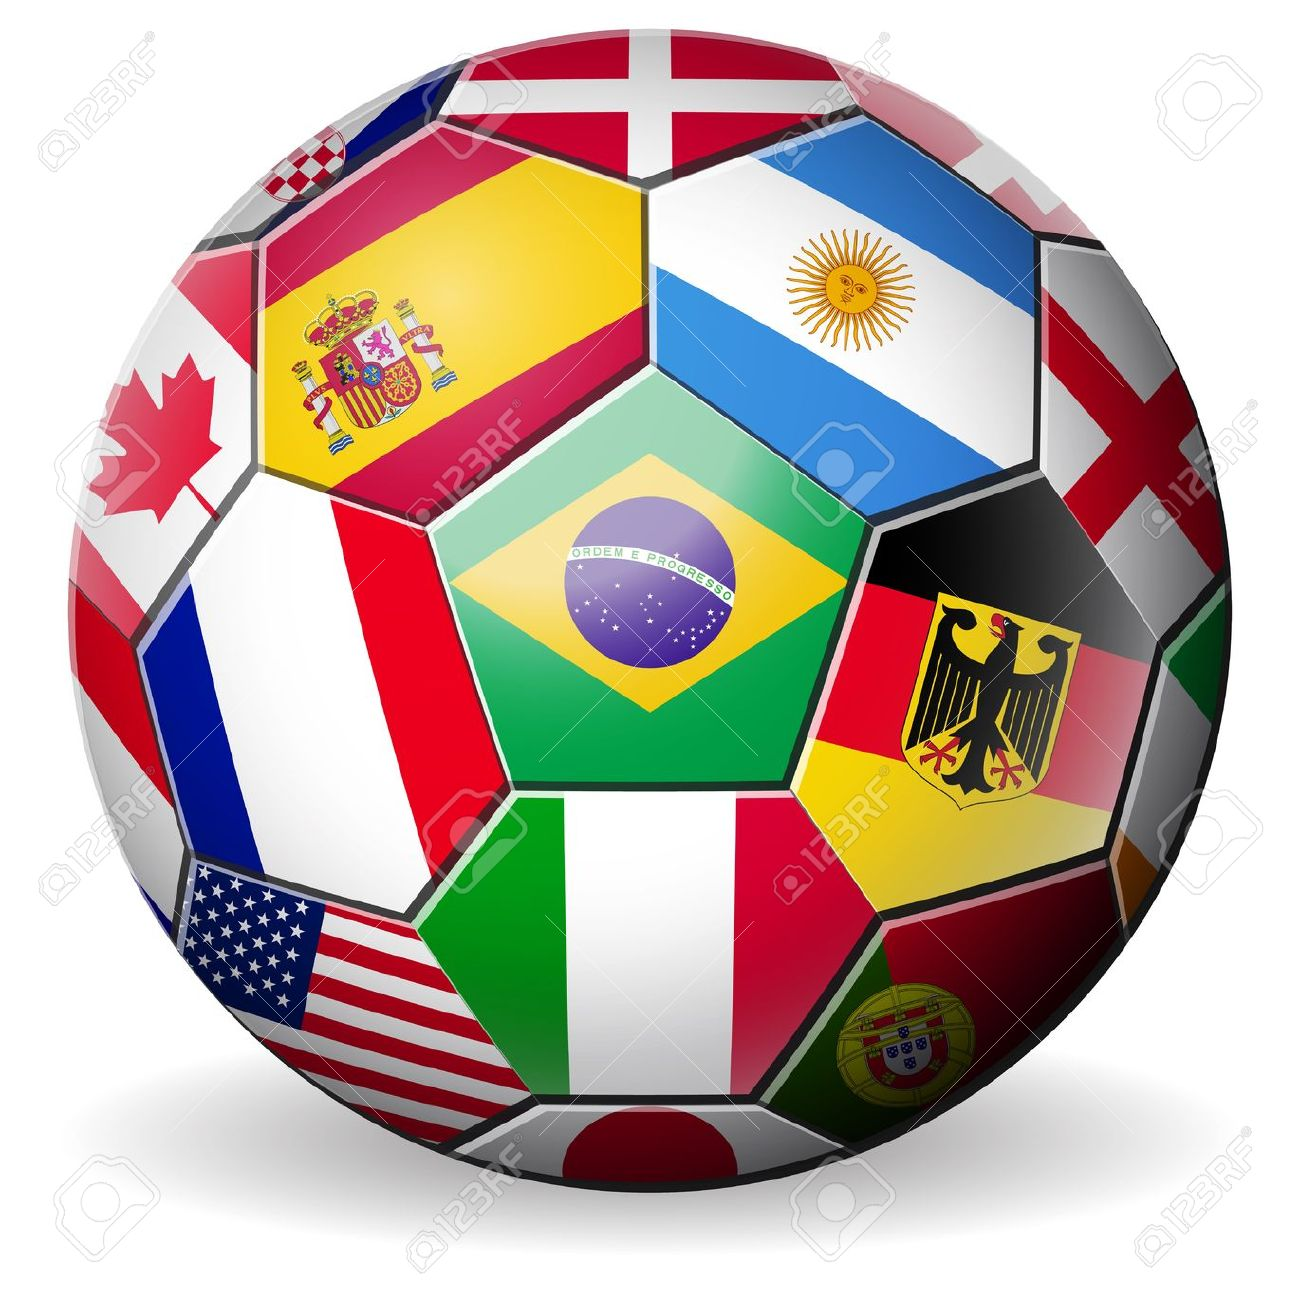 Argentina world cup clipart.